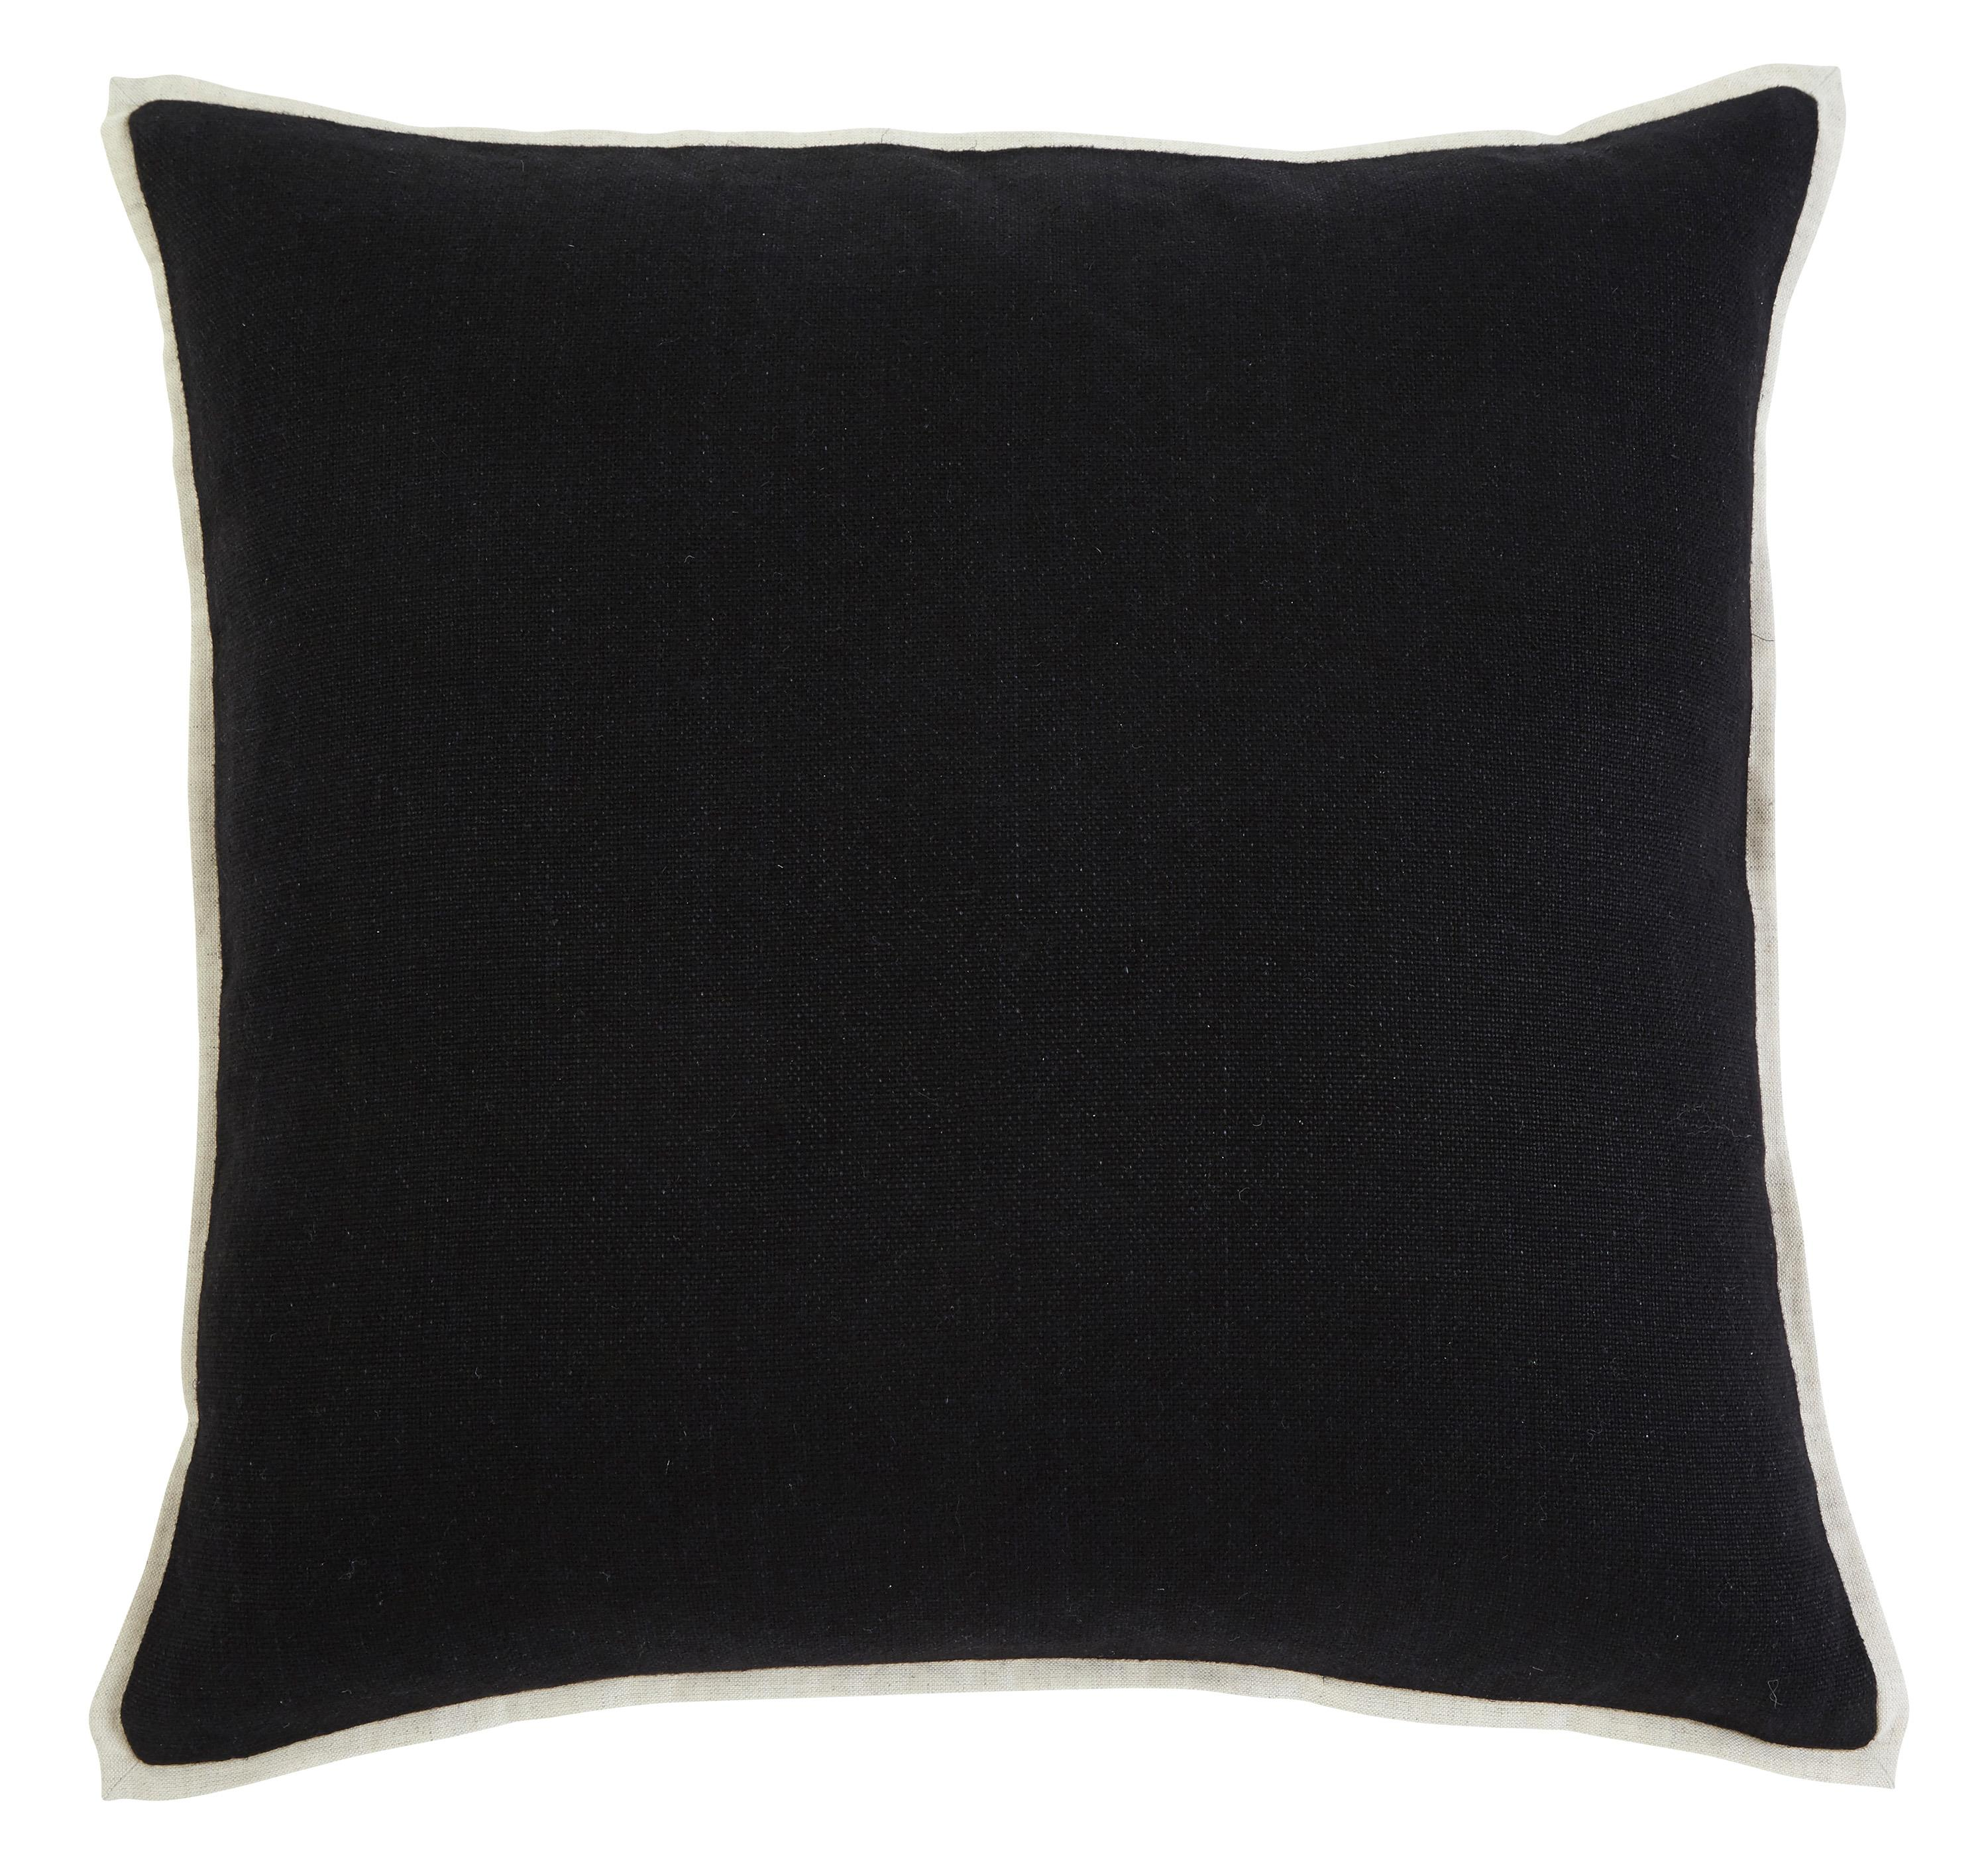 Signature Design by Ashley Pillows Solid - Black Pillow Cover - Item Number: A1000344P